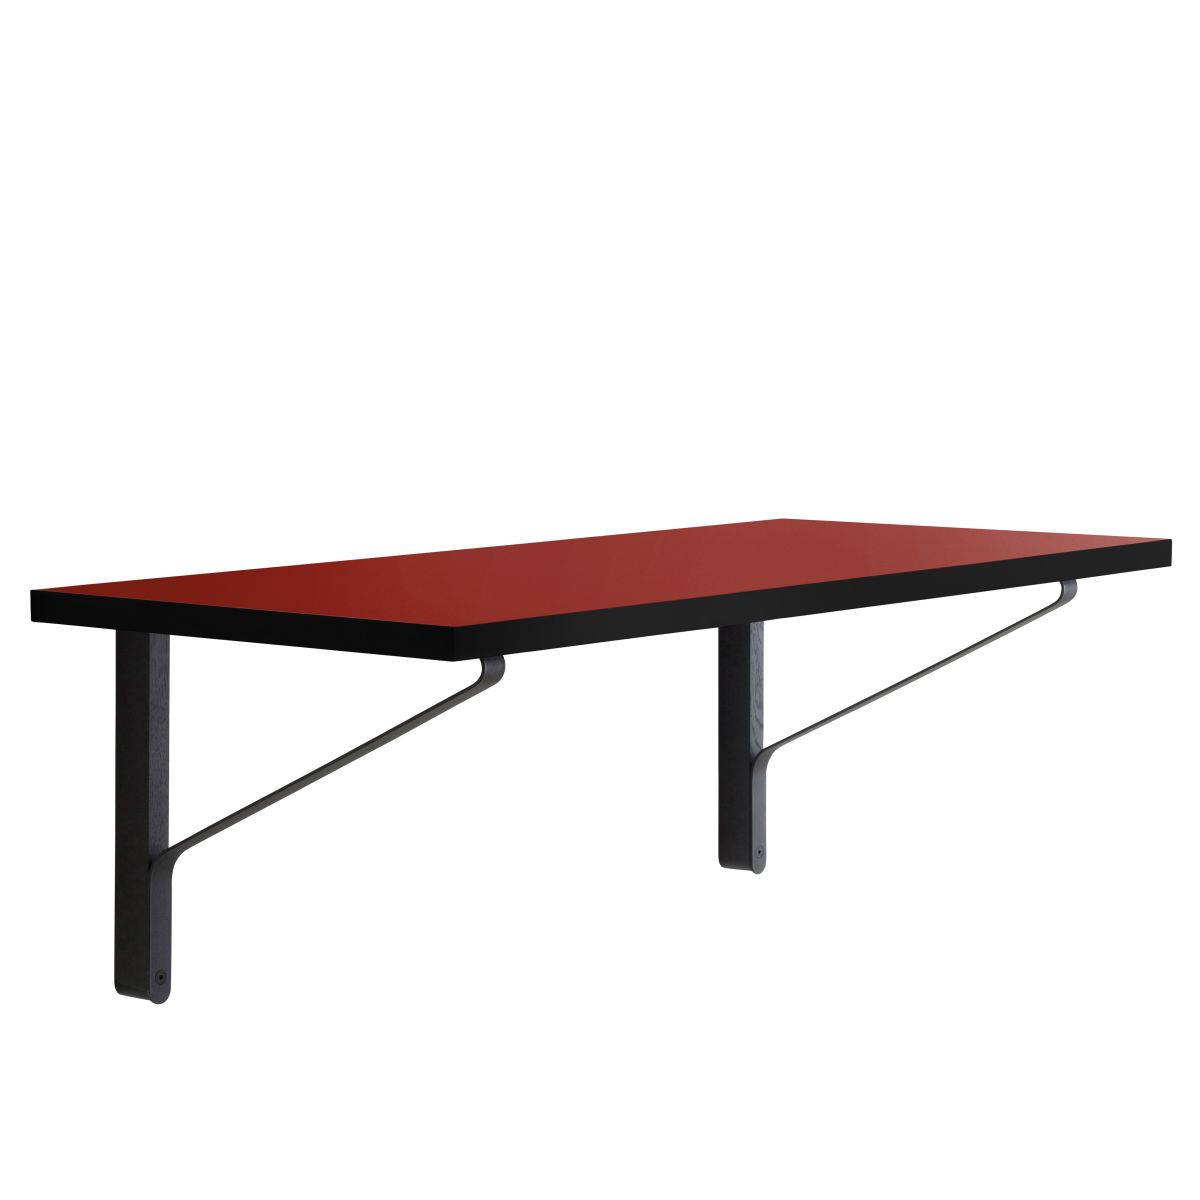 Kaari Wall Console REB006 black oak red Linoleum_WEB